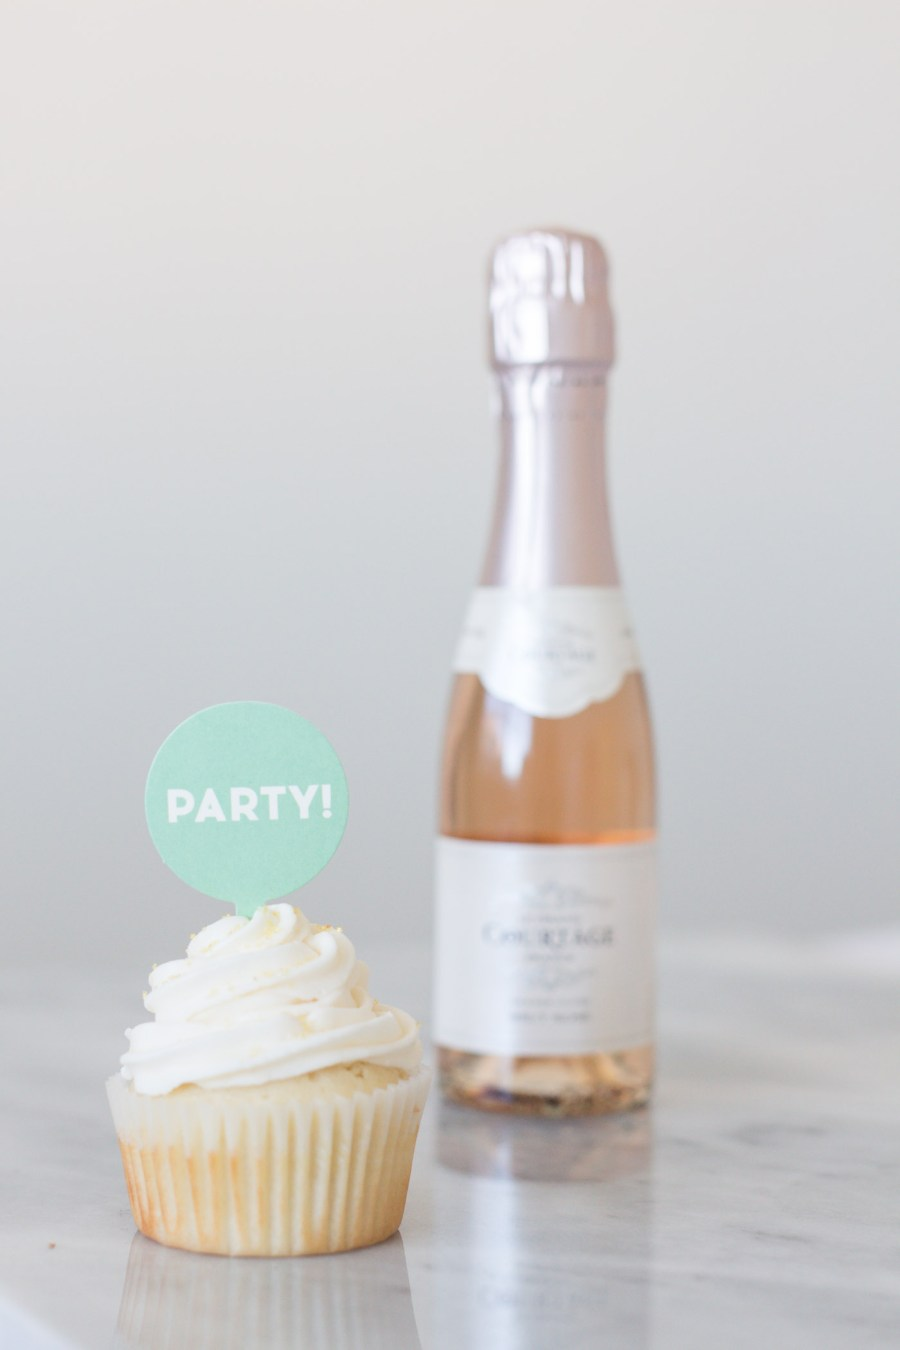 pink champagne cupcakes, food blog, Treats and Trends, baking blog, dessert, recipe, New Year's Eve